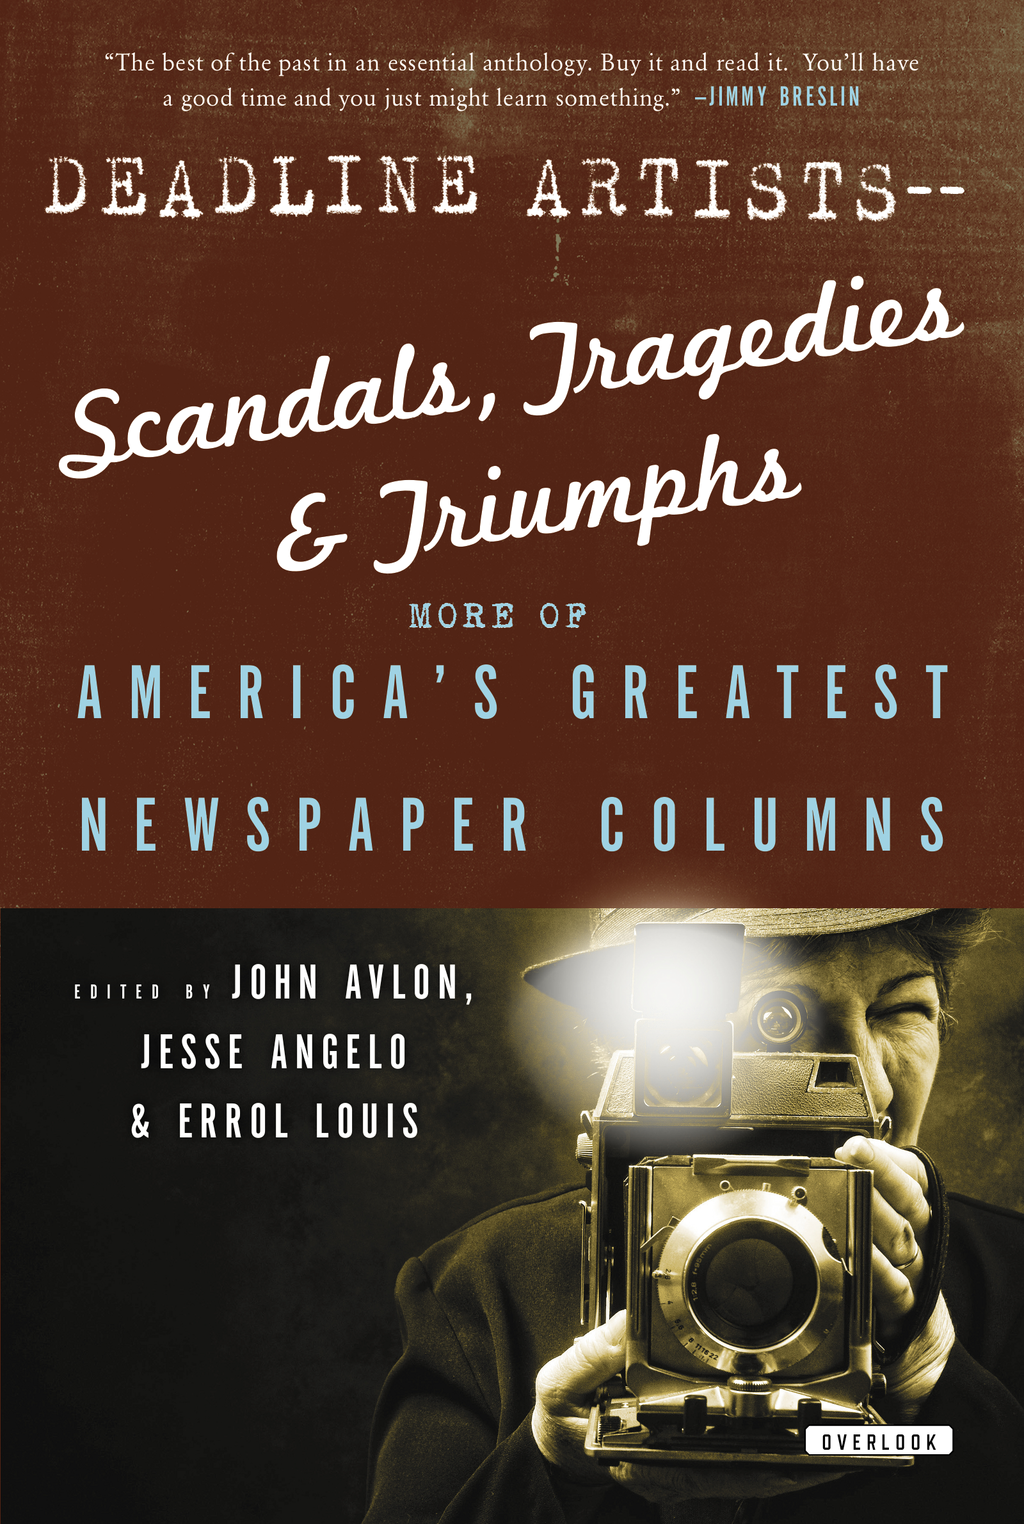 Deadline Artists--Scandals, Tragedies and Triumphs: